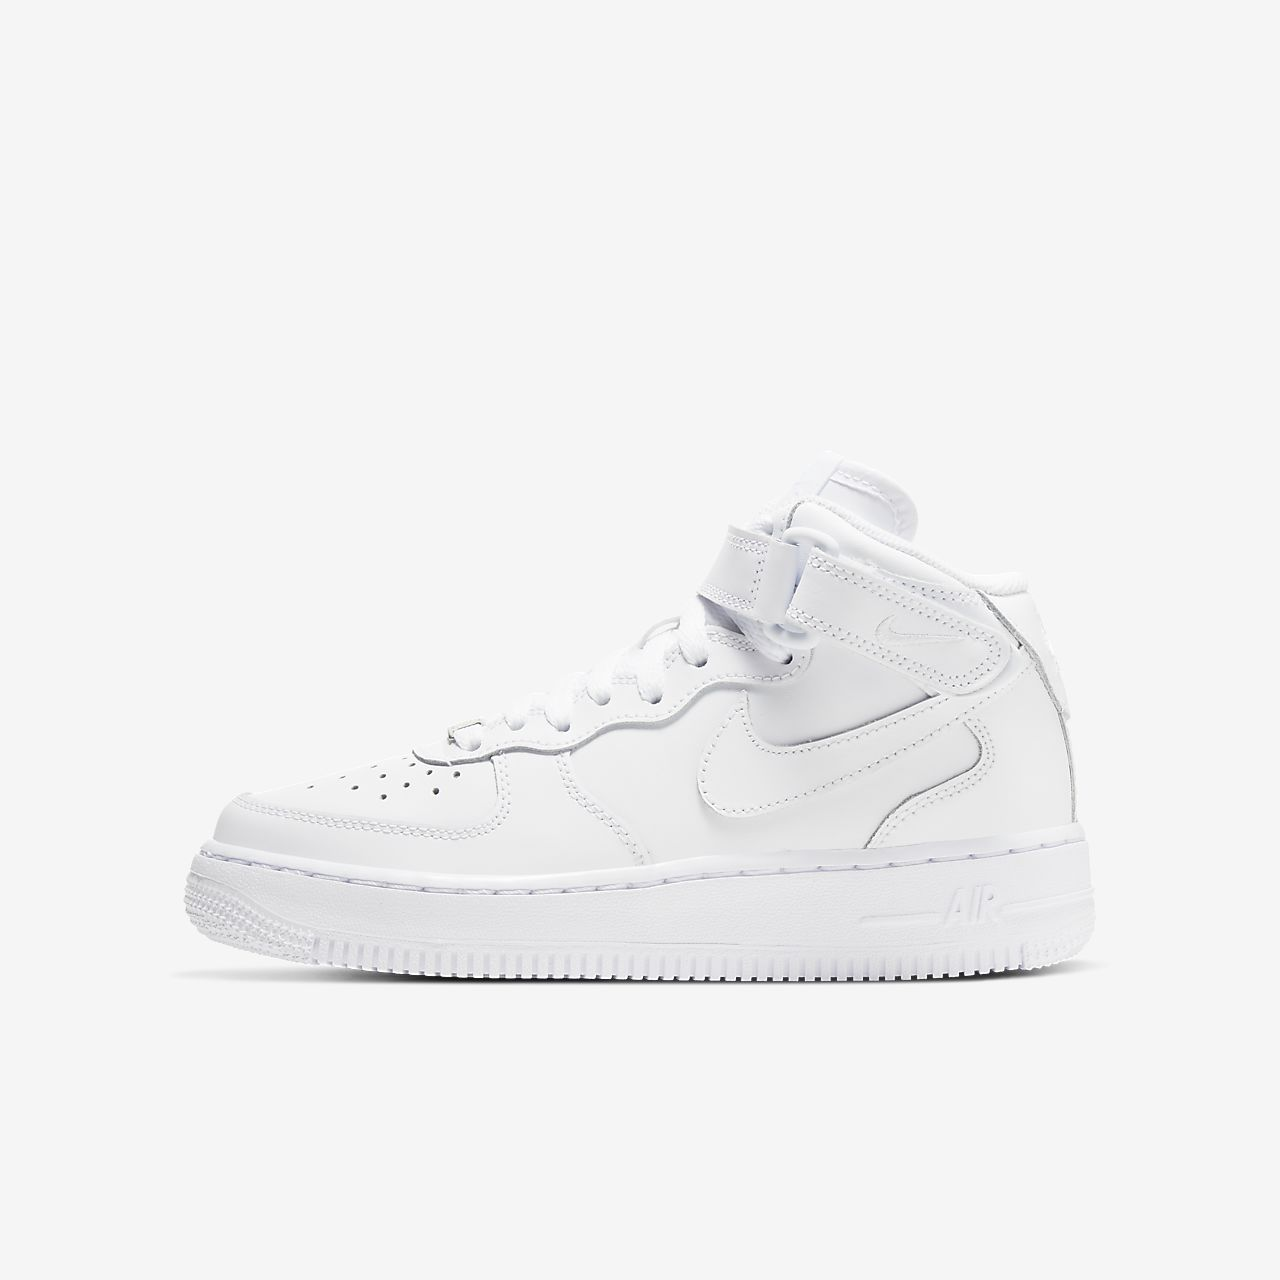 5d01306d99 Nike Air Force 1 Mid 06 Big Kids' Shoe. Nike.com